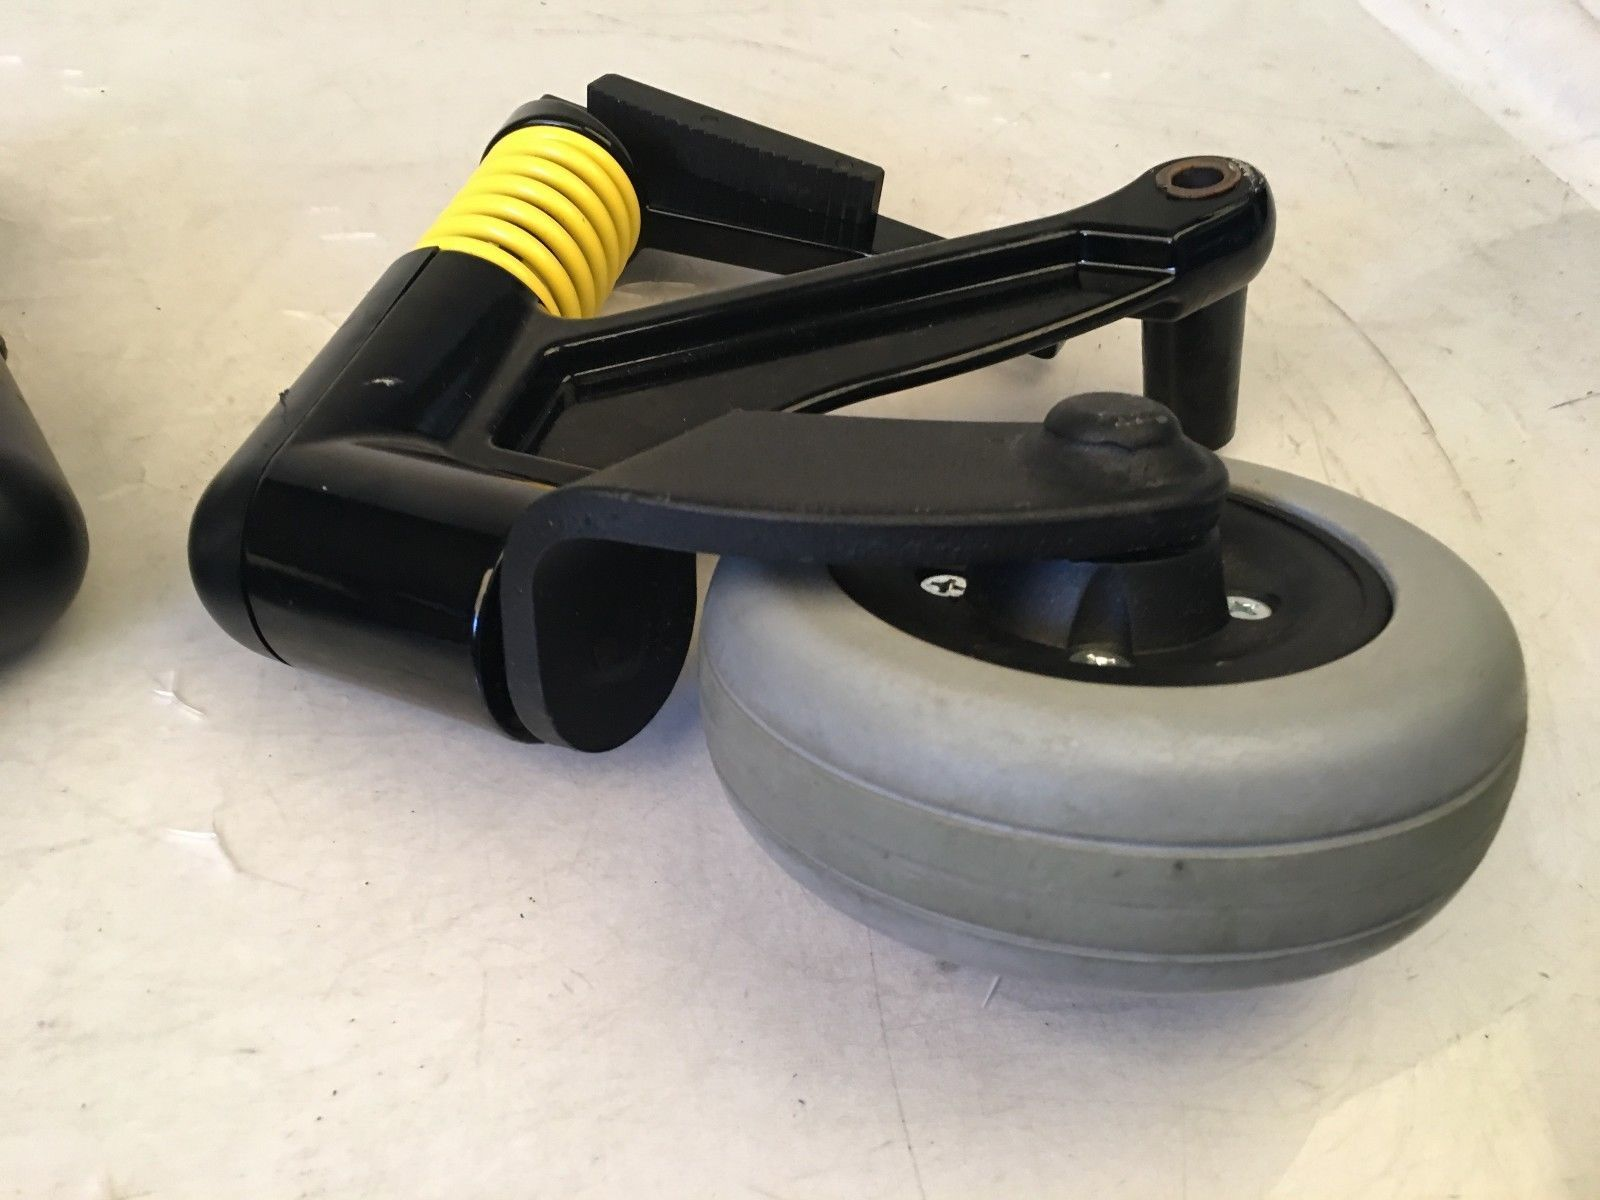 Anti-Roll/Tip Bars w/ Caster Wheels from Invacare Storm TDX5 Power Wheelchair